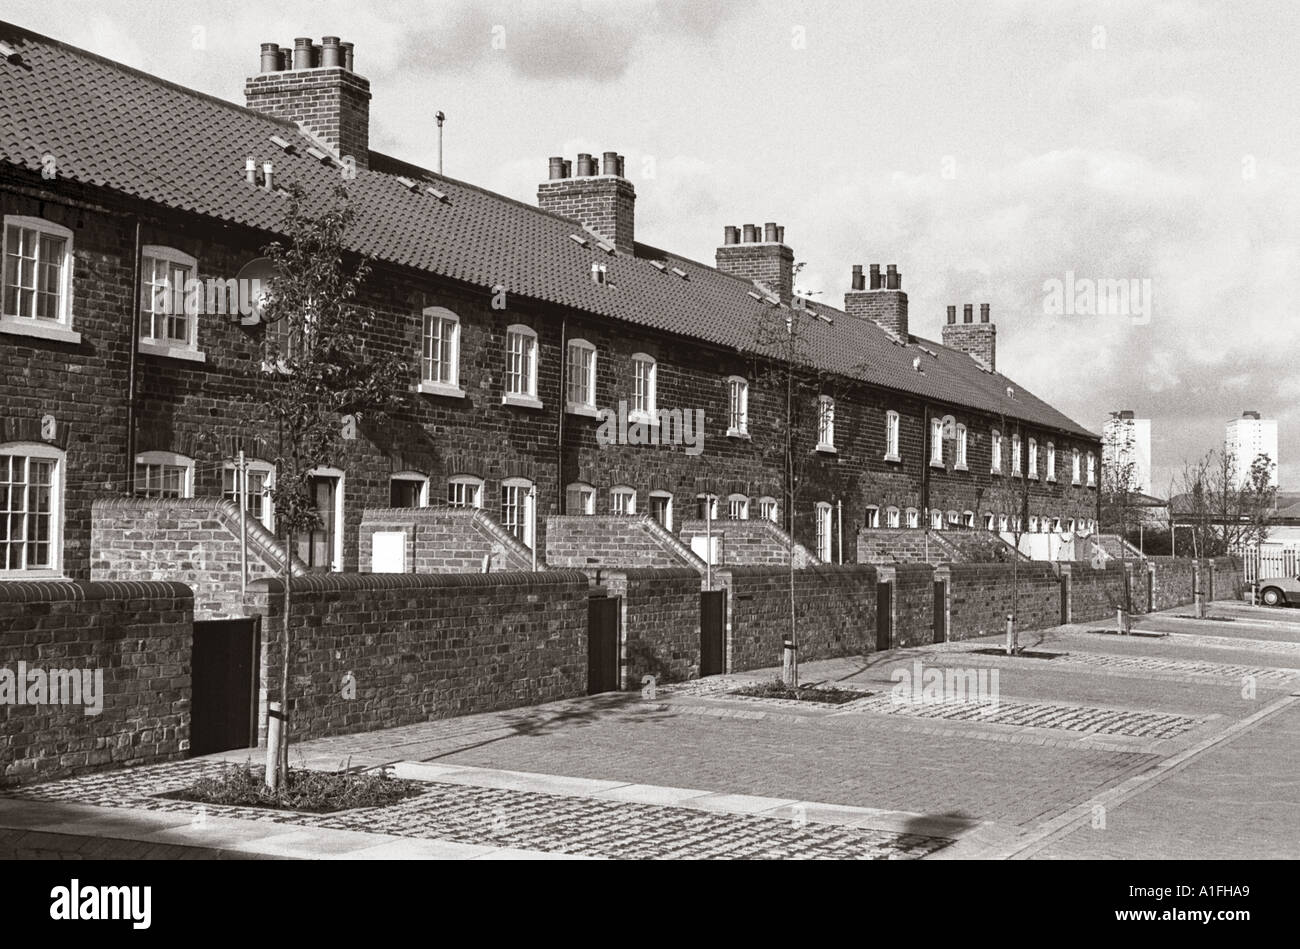 How To Renovate An Old House Old Terraced Houses From Late 1900 S Refurbished Stock